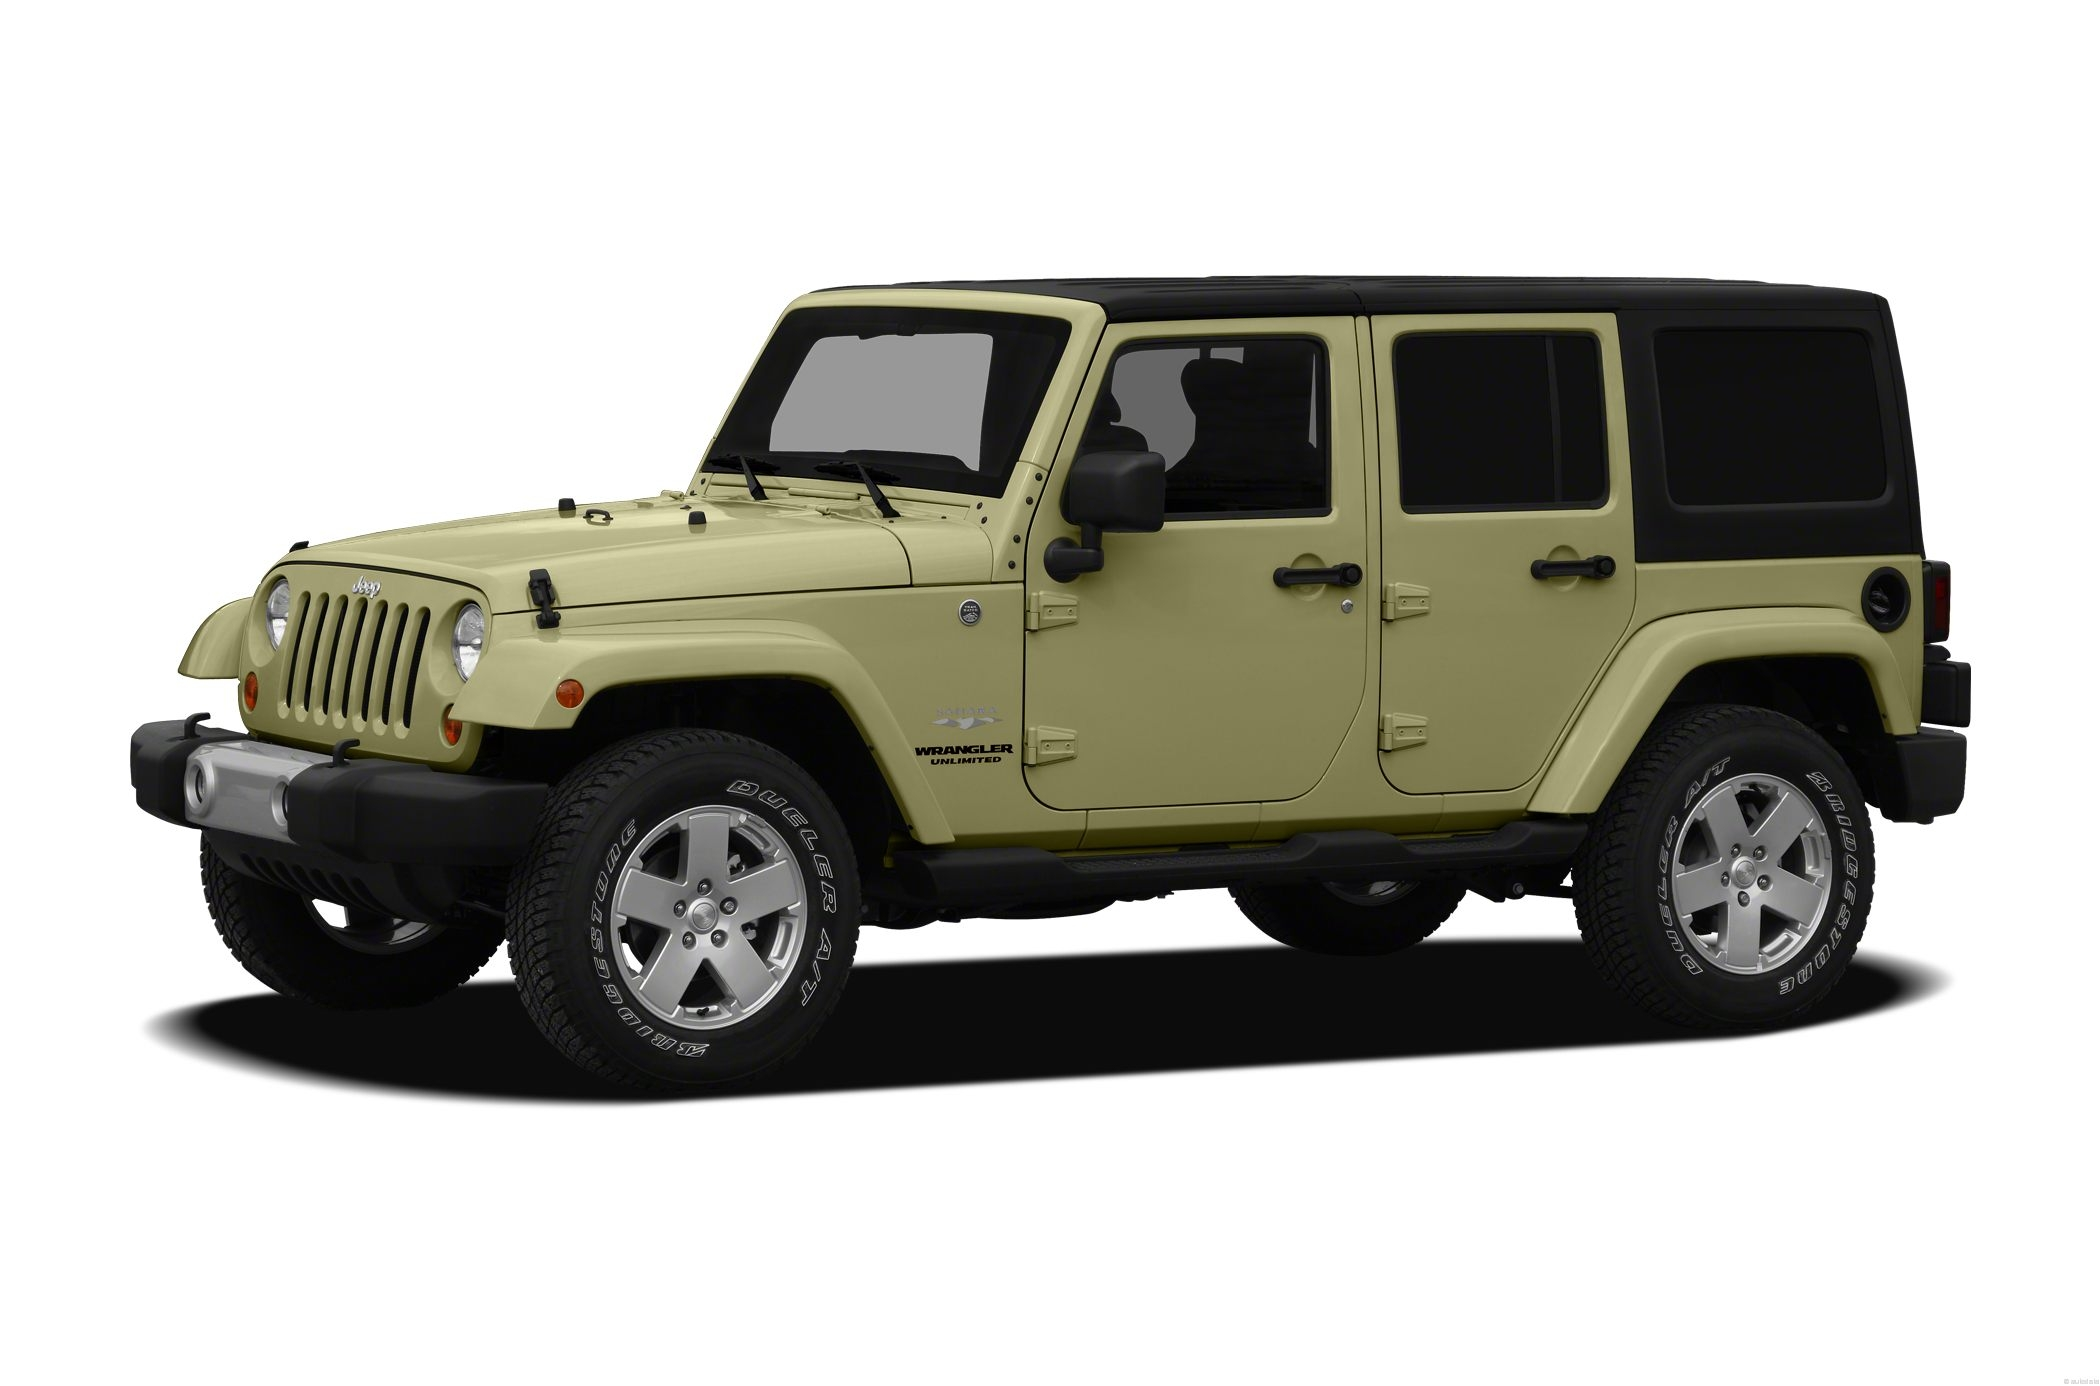 jeep wrangler unlimited invoice 2012 jeep wrangler unlimited suv sport 4dr 4x4 exterior front side view 2100 X 1386